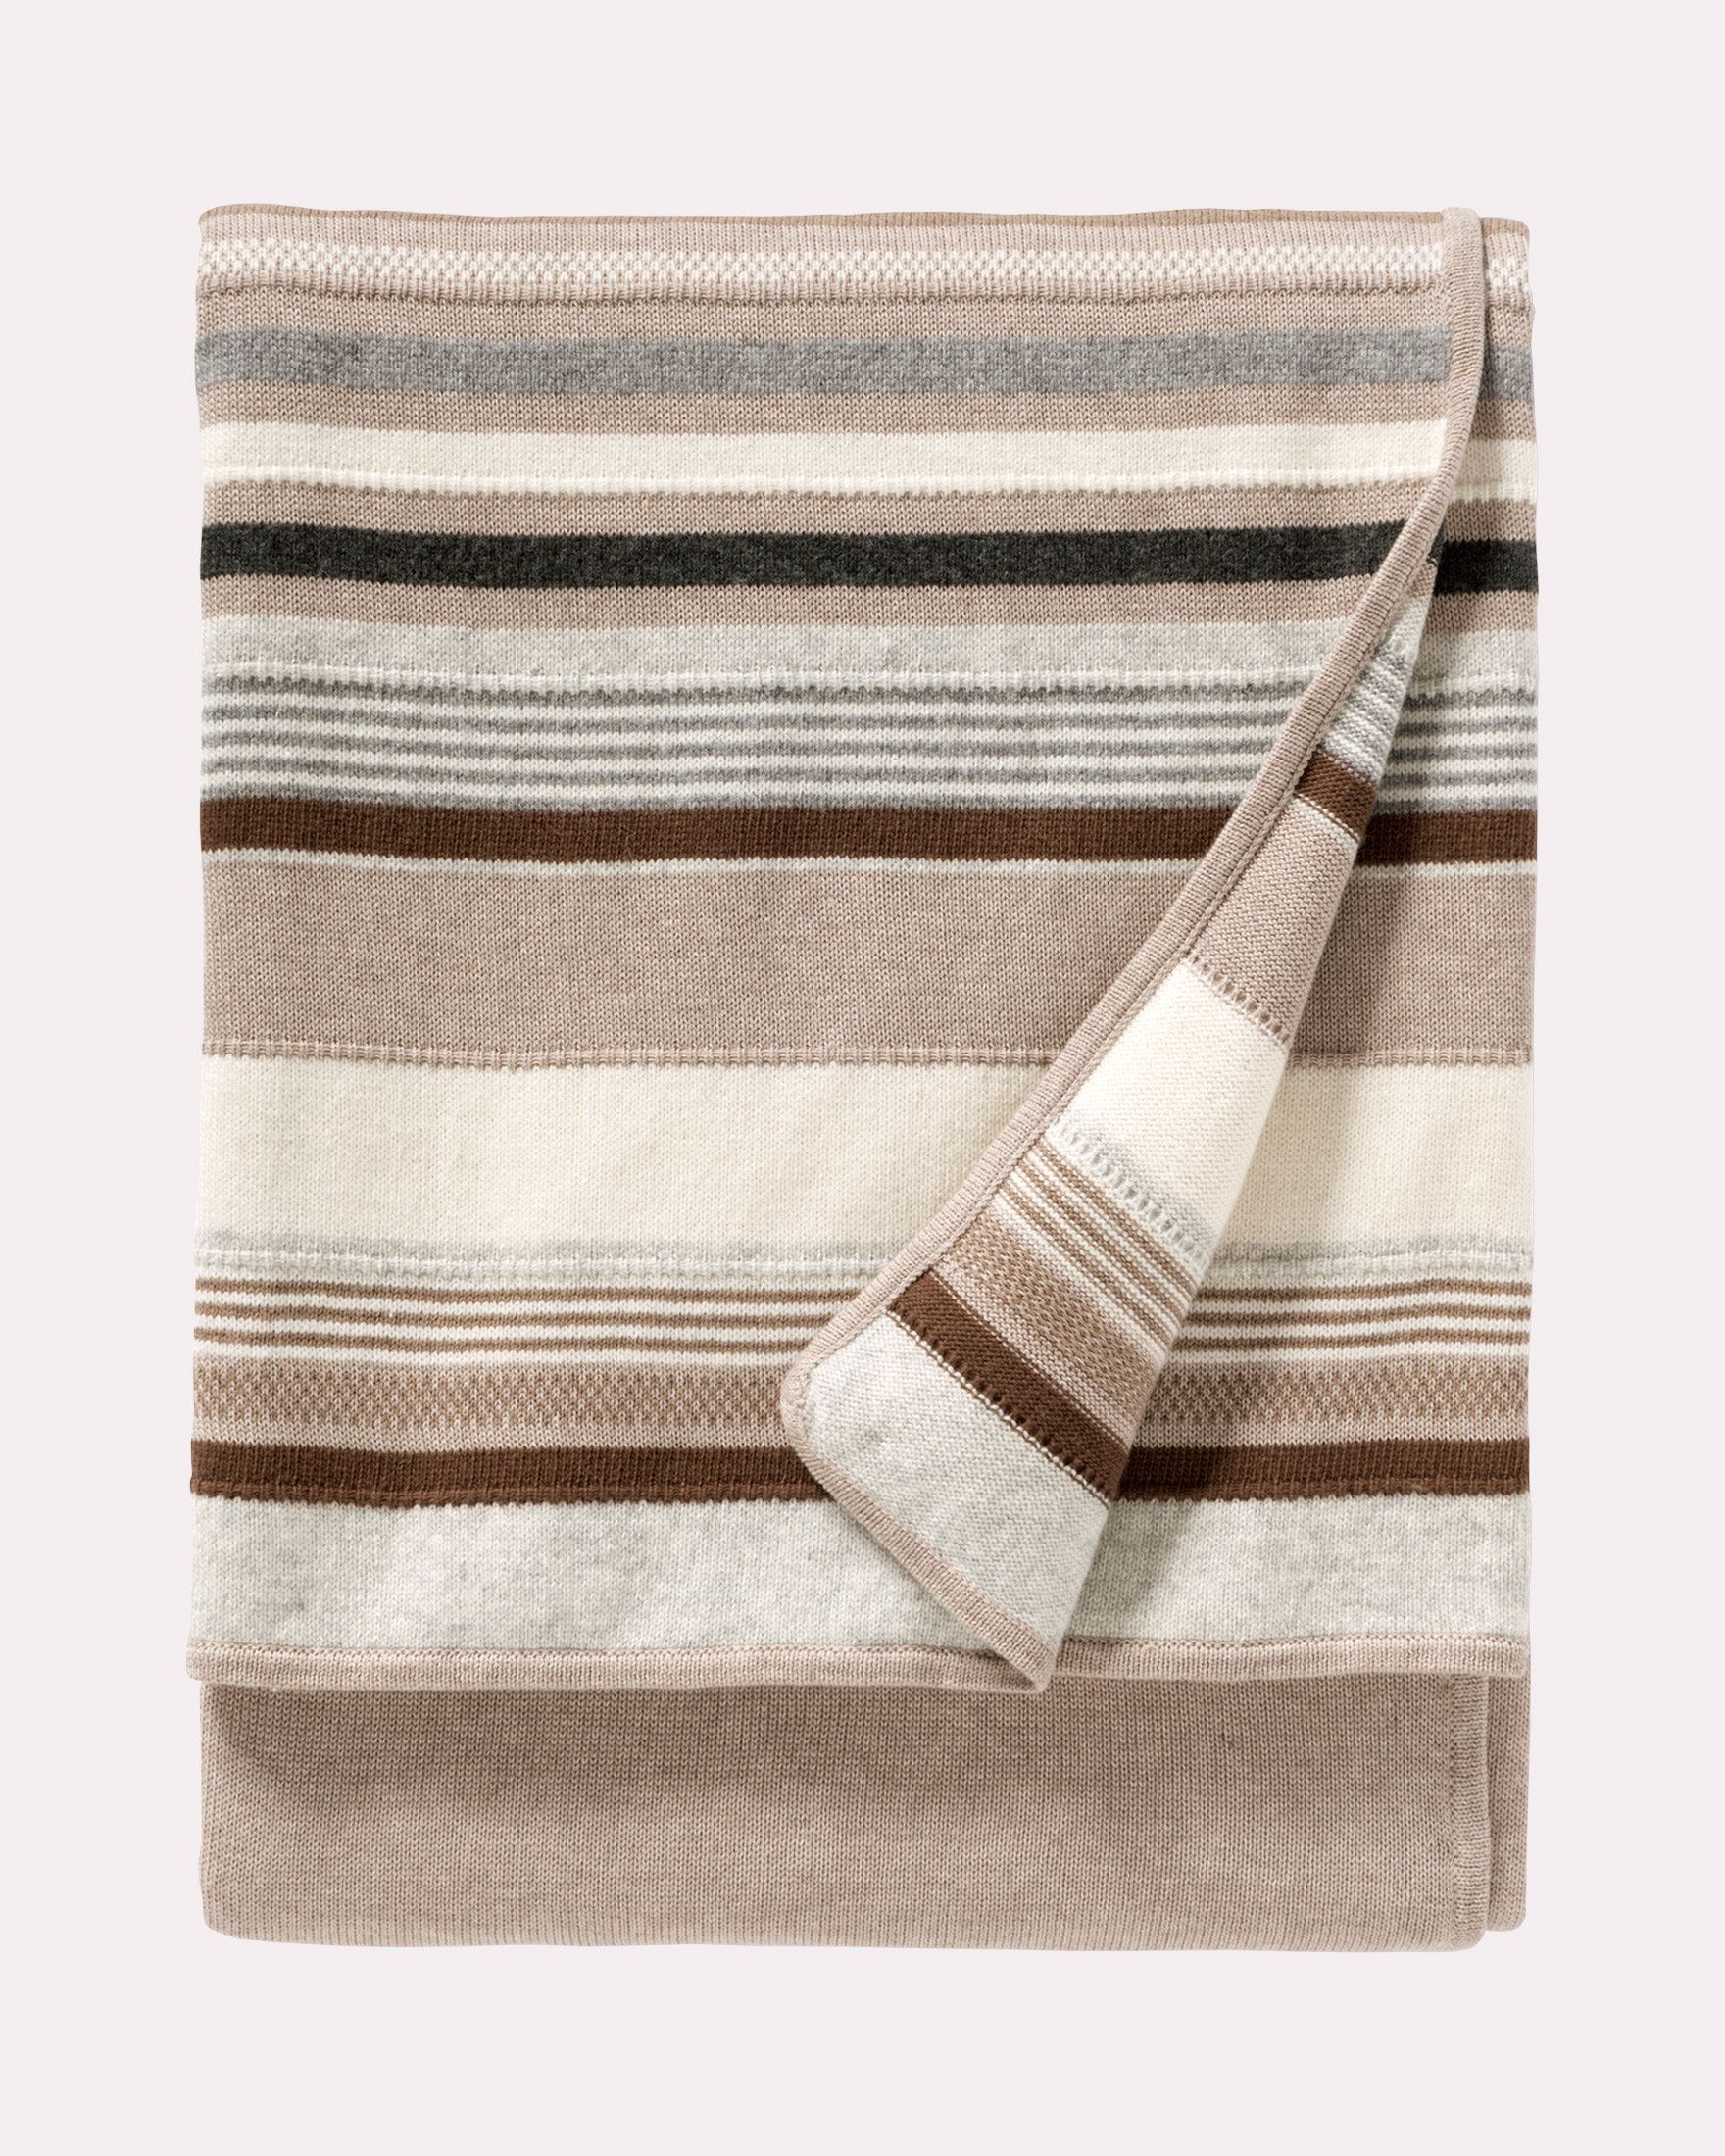 CHIMAYO KNIT THROW, BEIGE MULTI, large